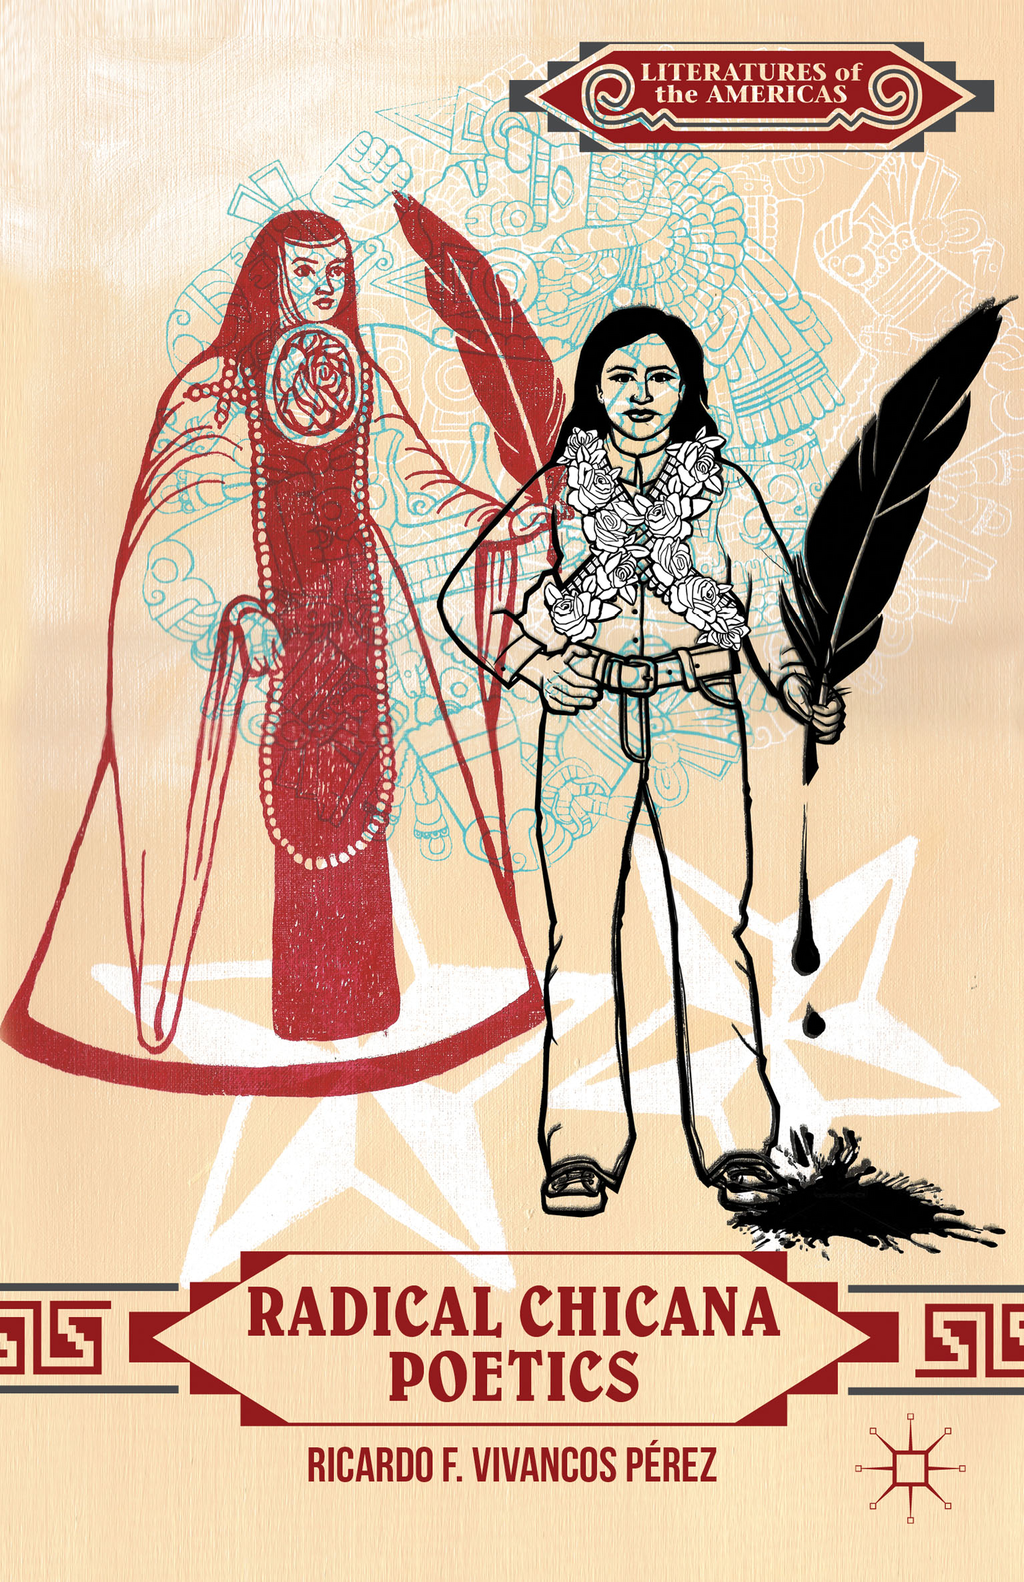 Radical Chicana Poetics